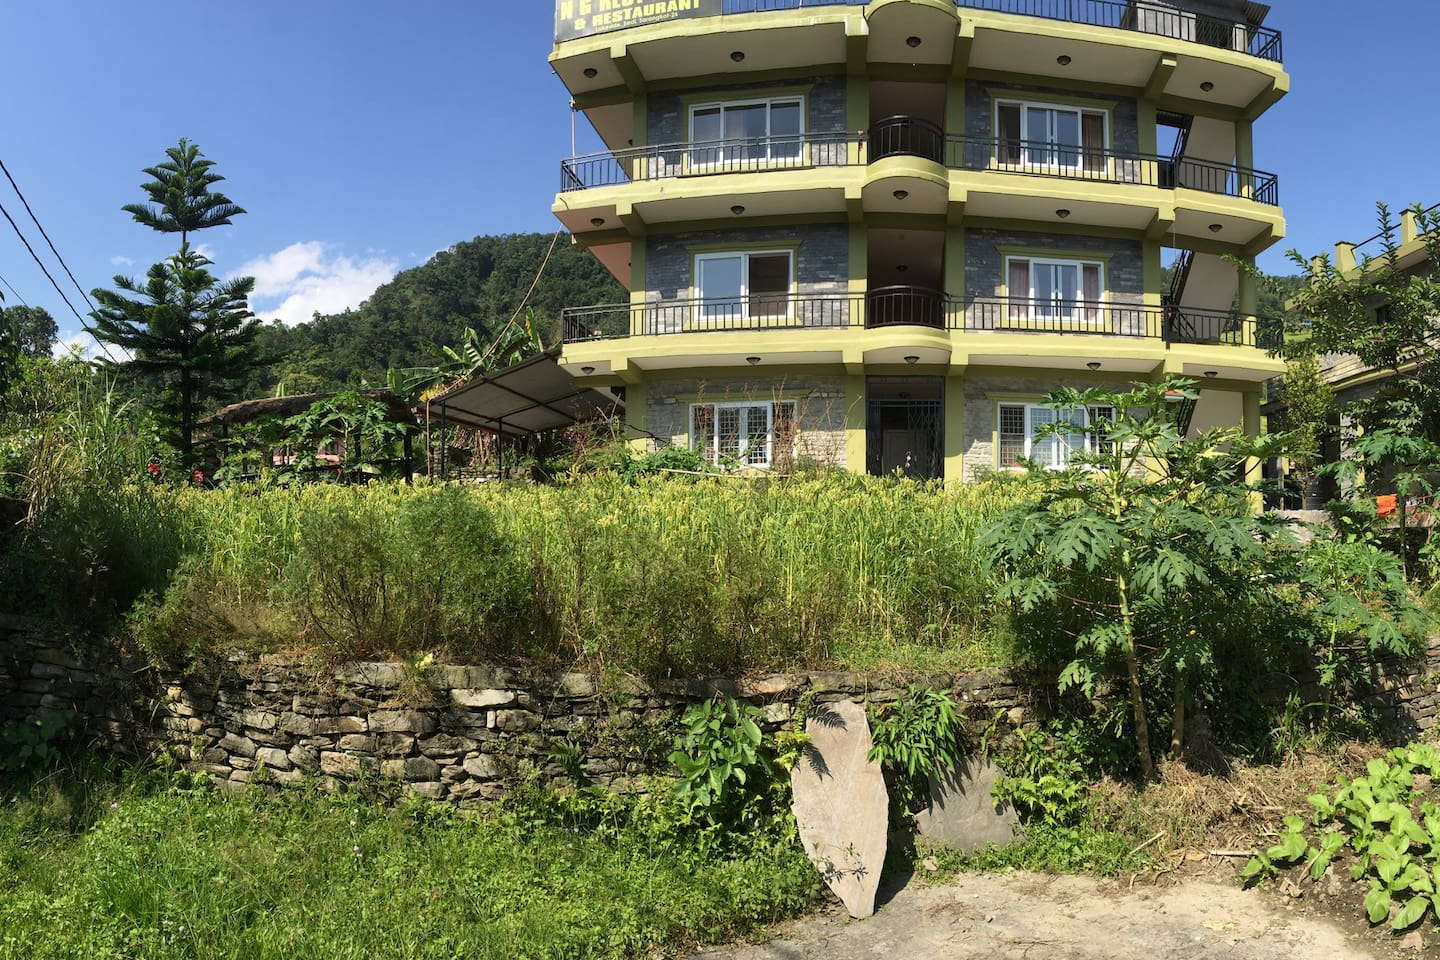 Our organic garden and guest house